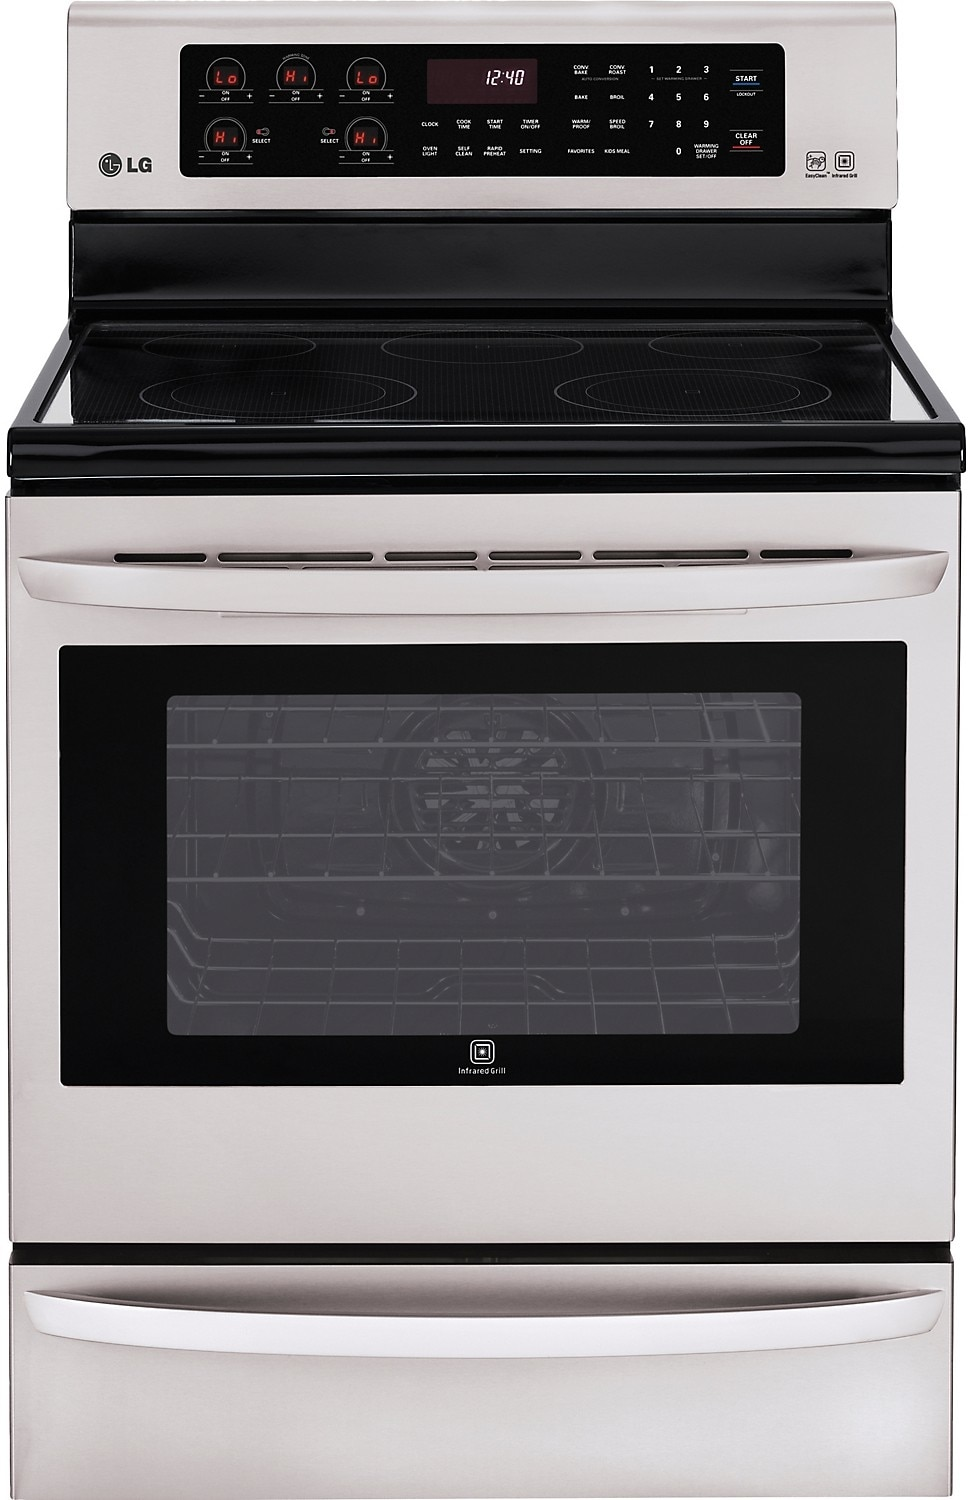 Cooking Products - LG 6.3 Cu. Ft. Freestanding Electric Range with Infrared Grill - Stainless Steel